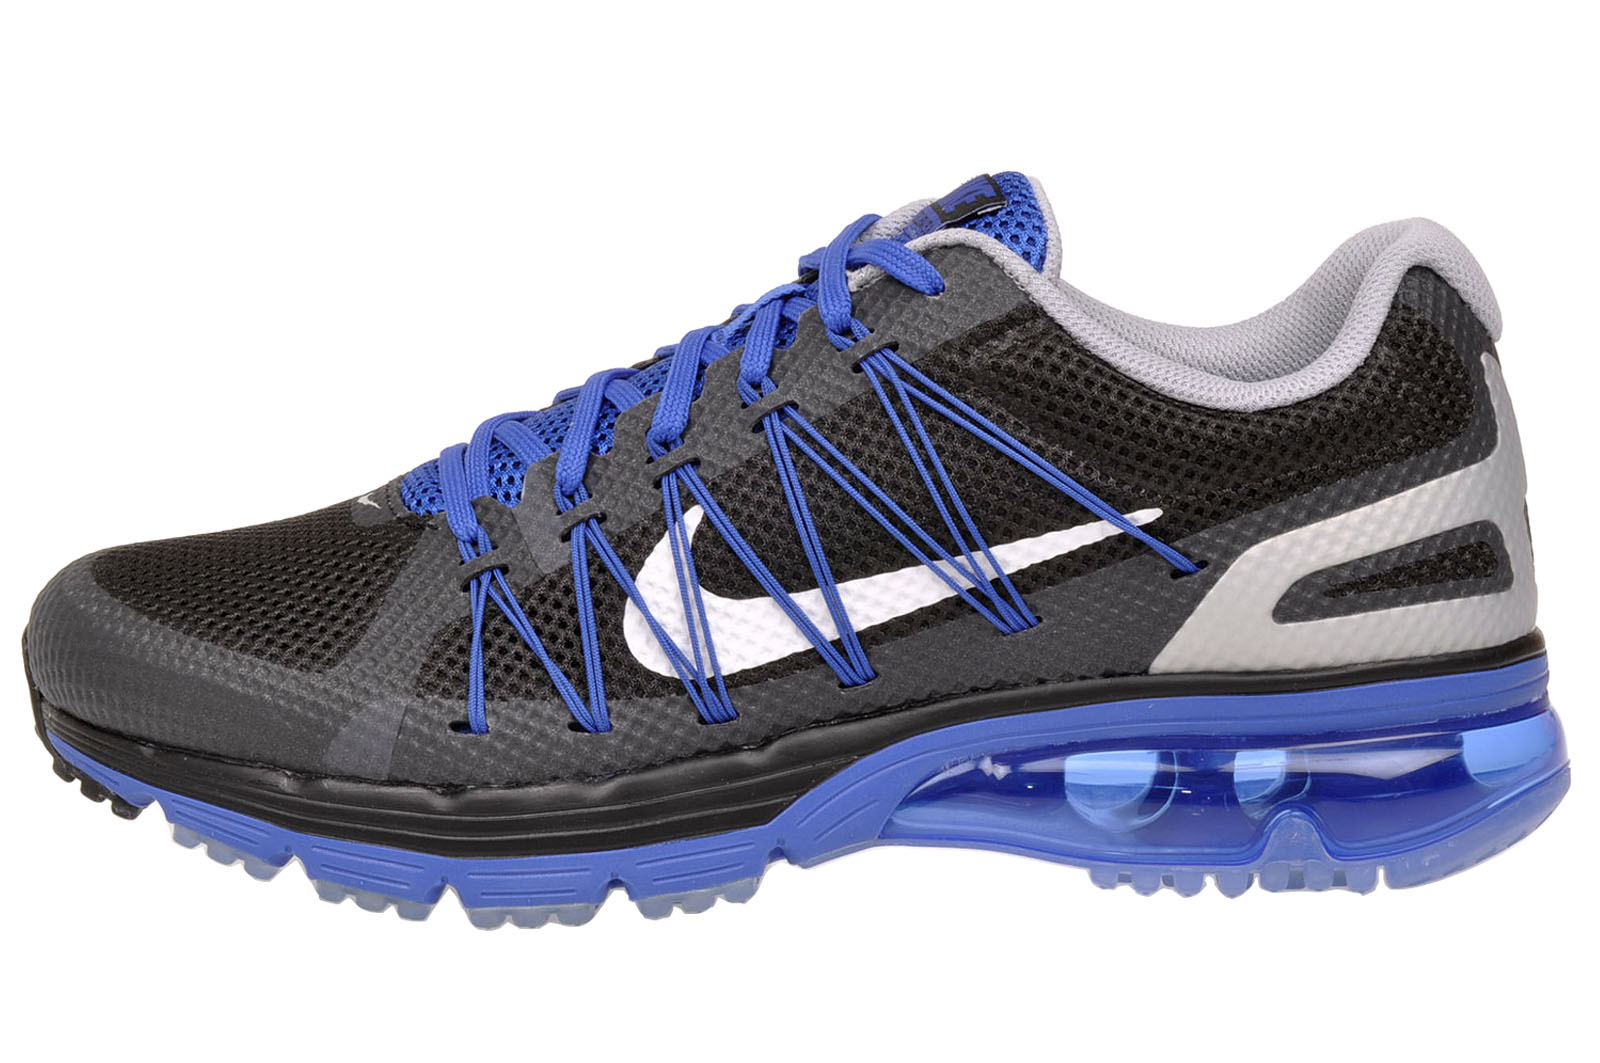 Nike Air Max Excellerate 3 Mens 2015 Running Shoes Run Sneakers 703072 012 | eBay